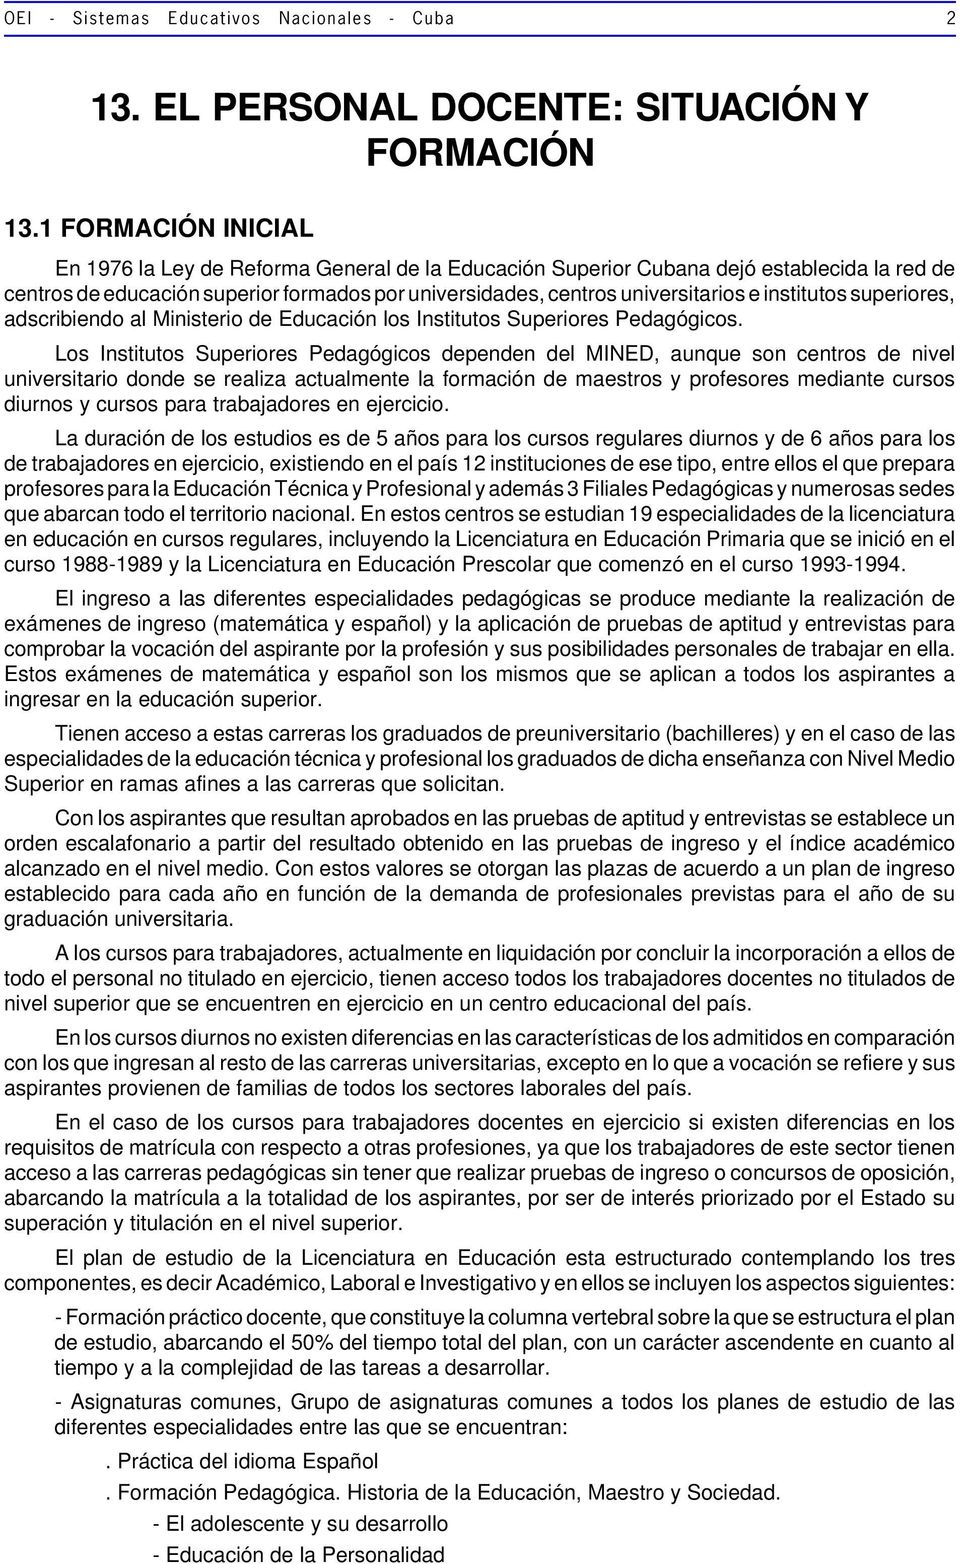 institutos superiores, adscribiendo al Ministerio de Educación los Institutos Superiores Pedagógicos.